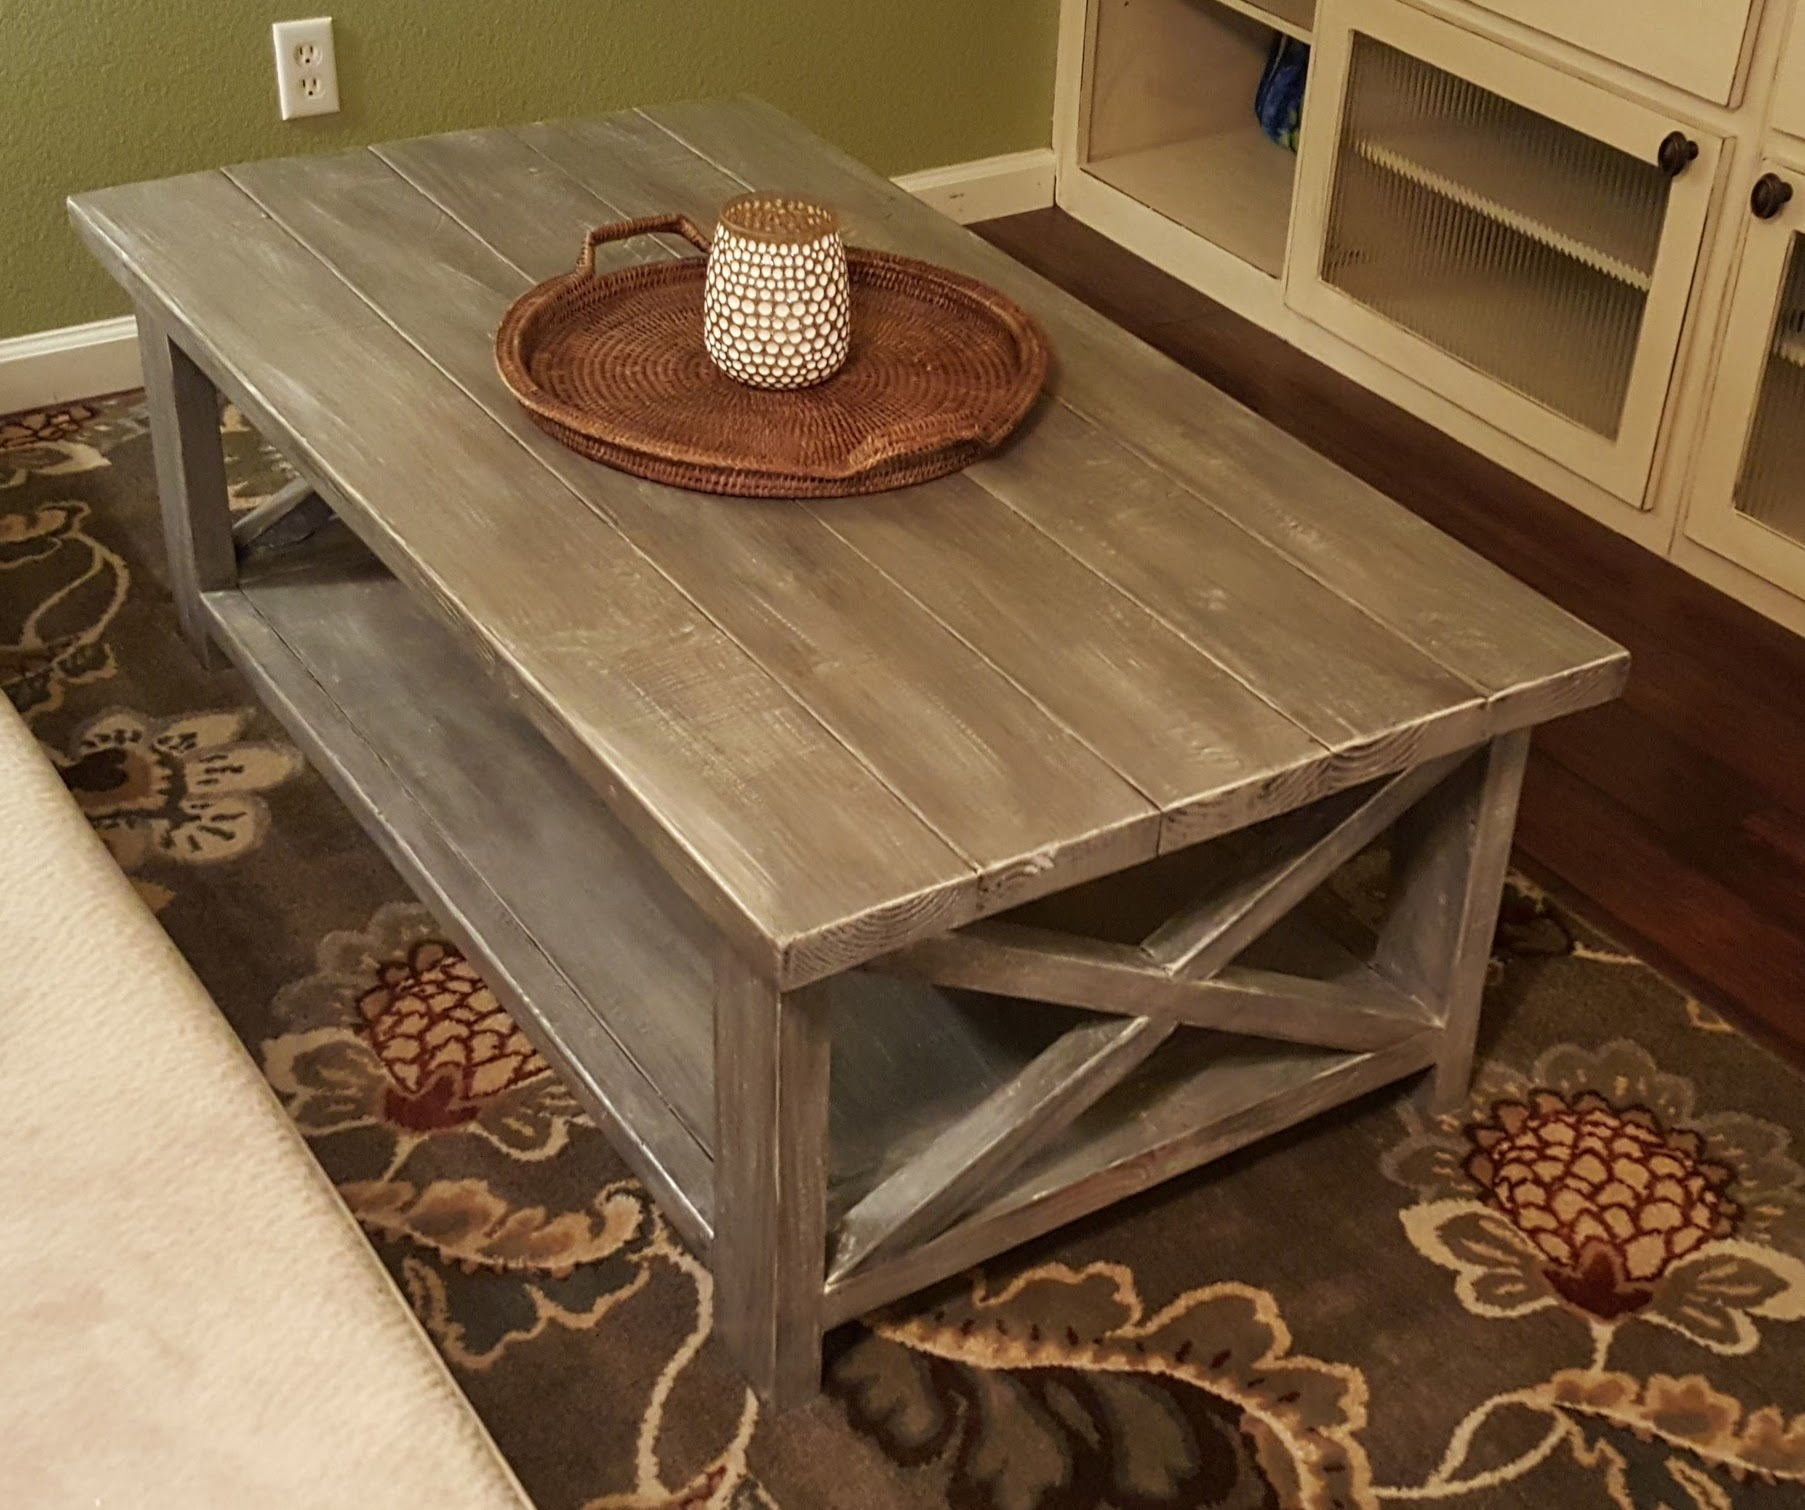 Coffee Table 1 Furniture For The Cottage Life Furniture Refinishing By Seaside Beach Home